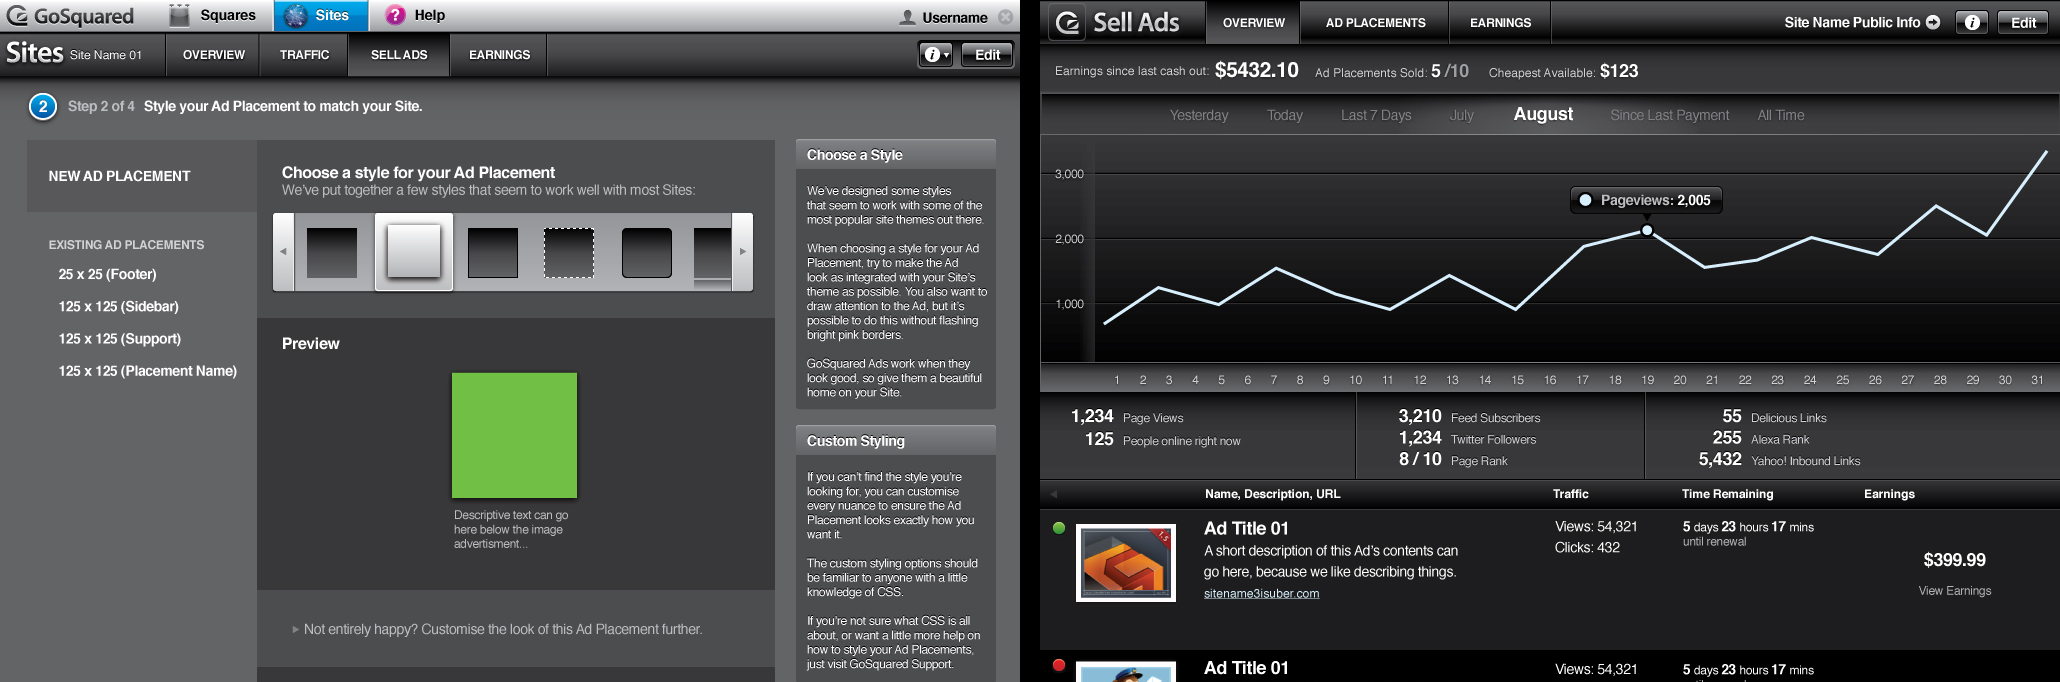 Early advertising dashboards for GoSquared customers.